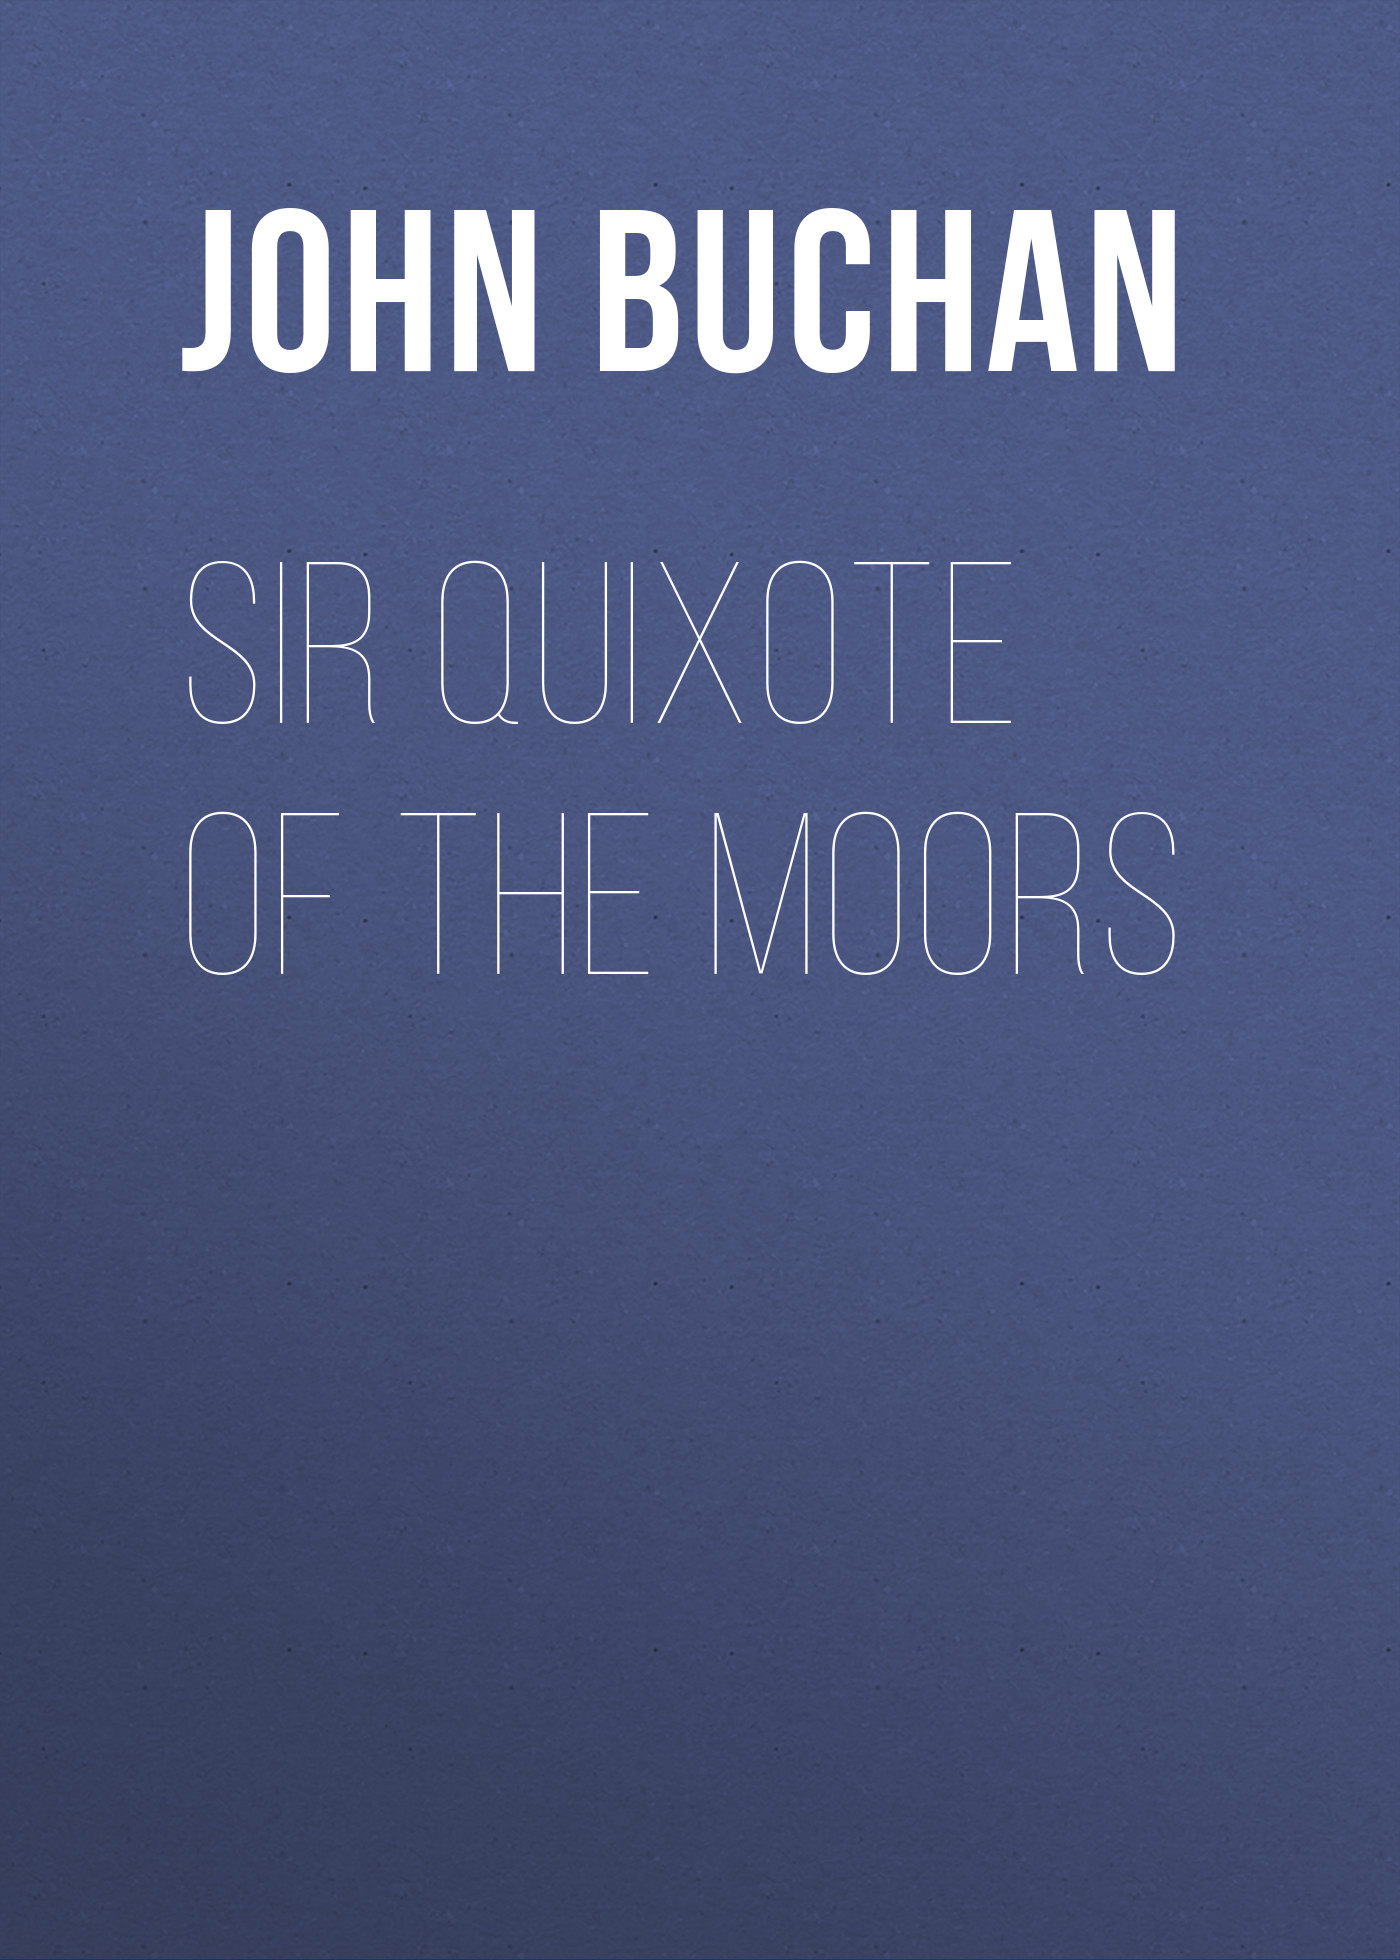 Buchan John Sir Quixote of the Moors